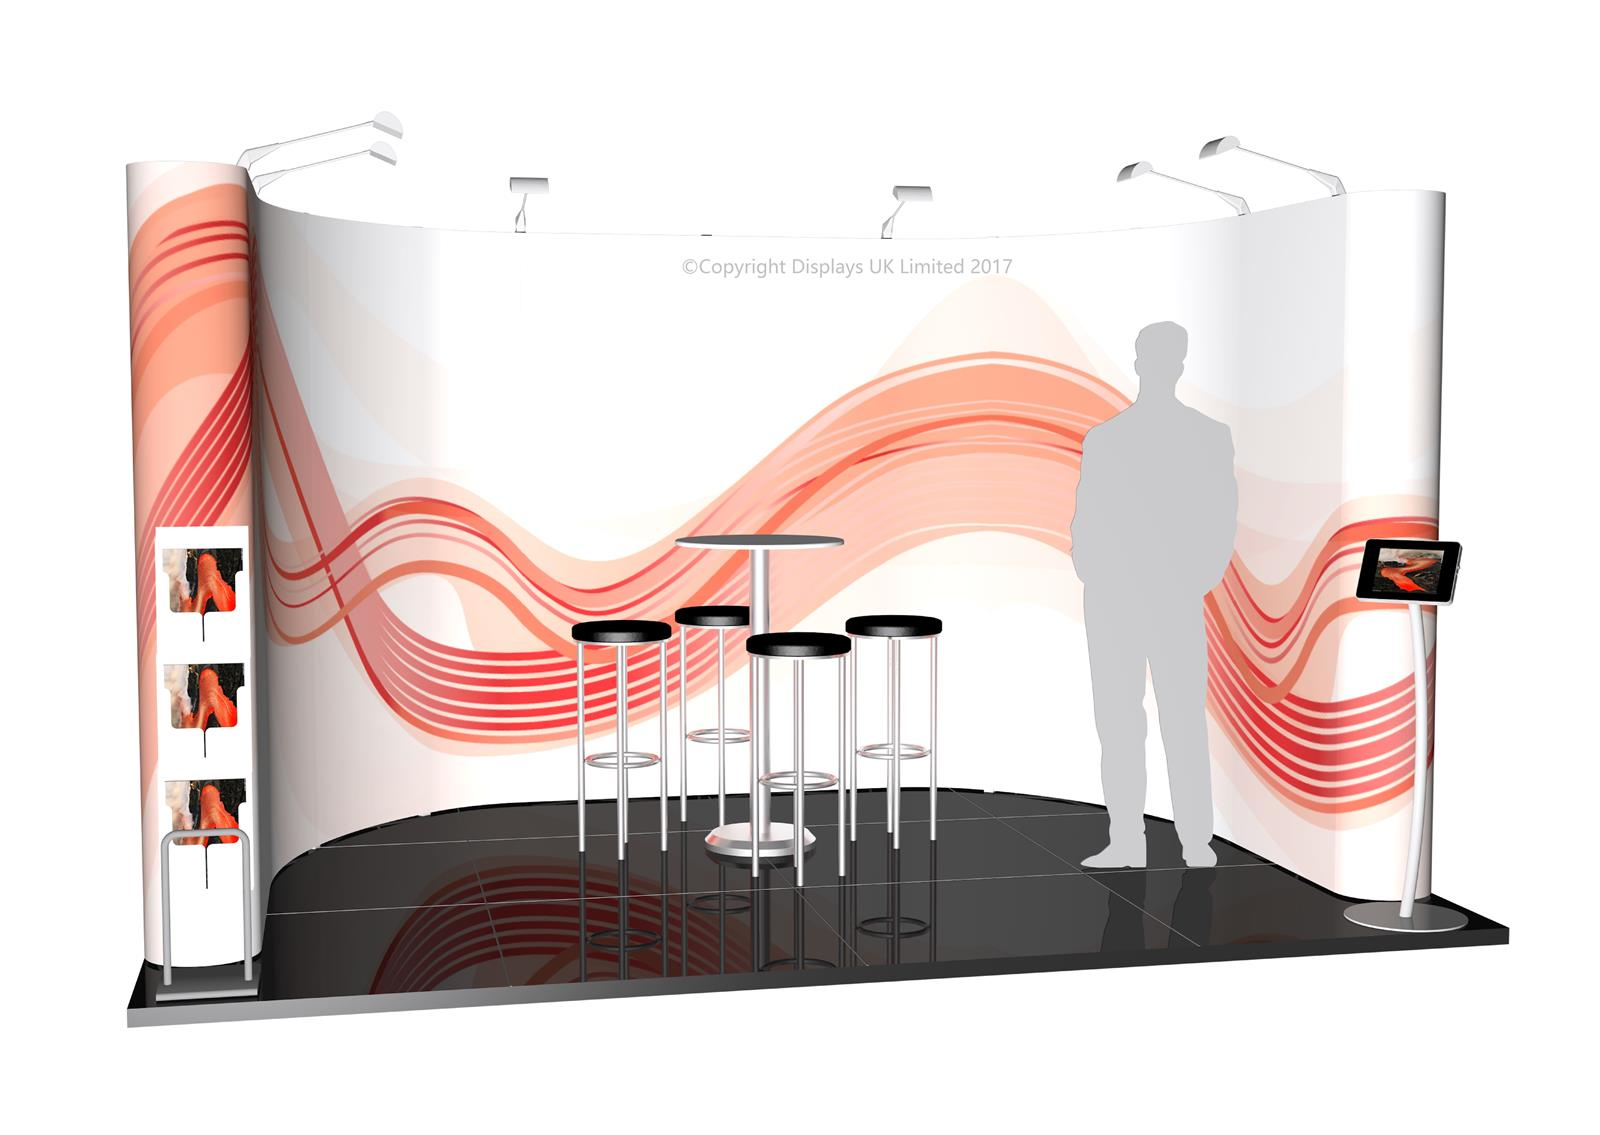 3m x 4m Linked Pop Up Exhibition Stand - Kit 18 - P4x3-1aC